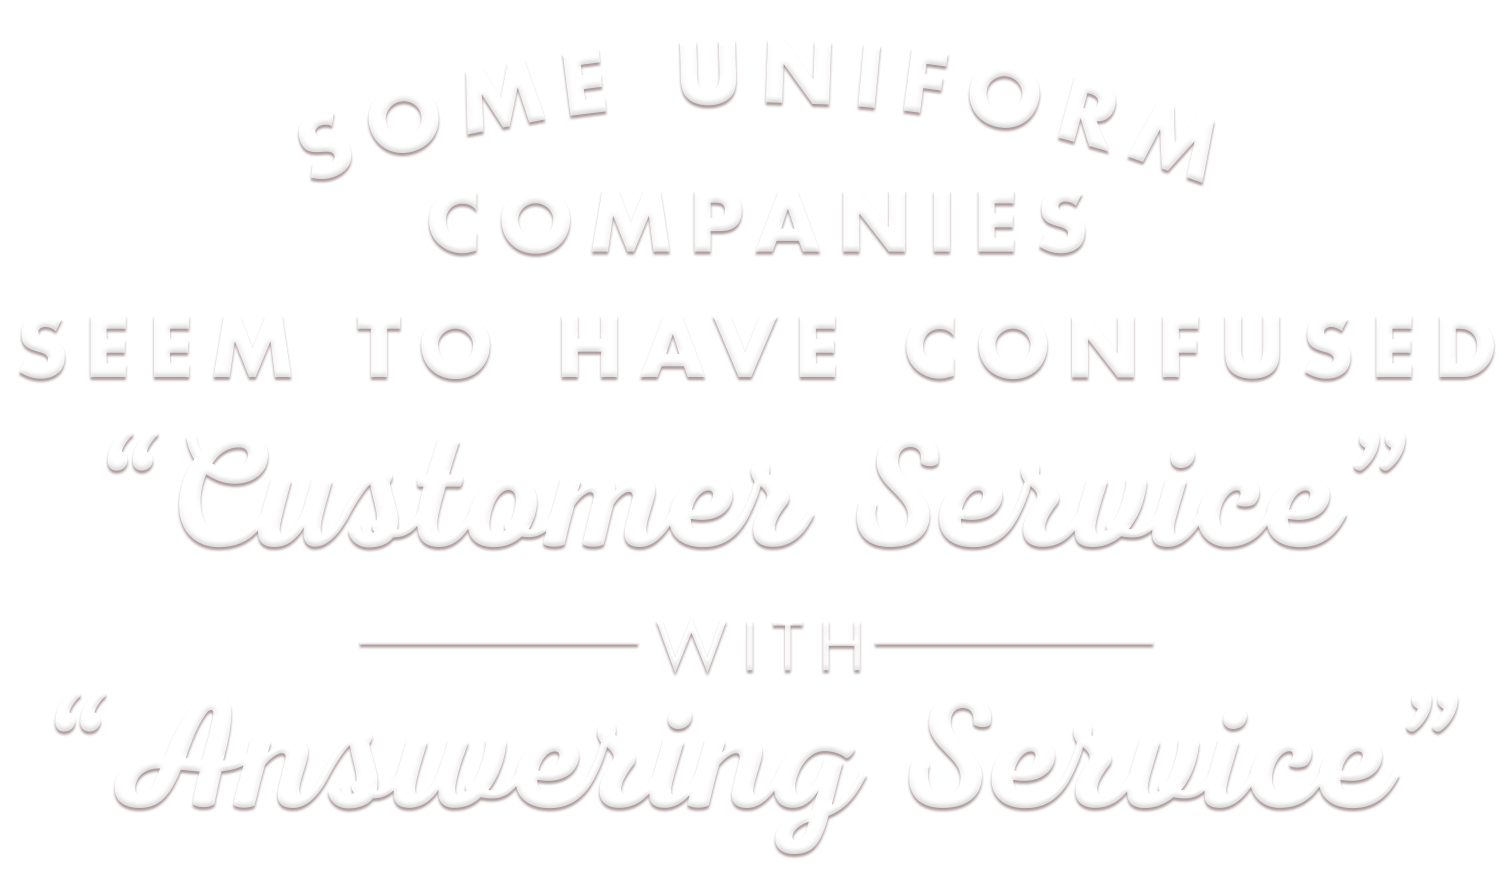 Some uniform companies seem to have confused 'Customer Service' with 'Answering Service'